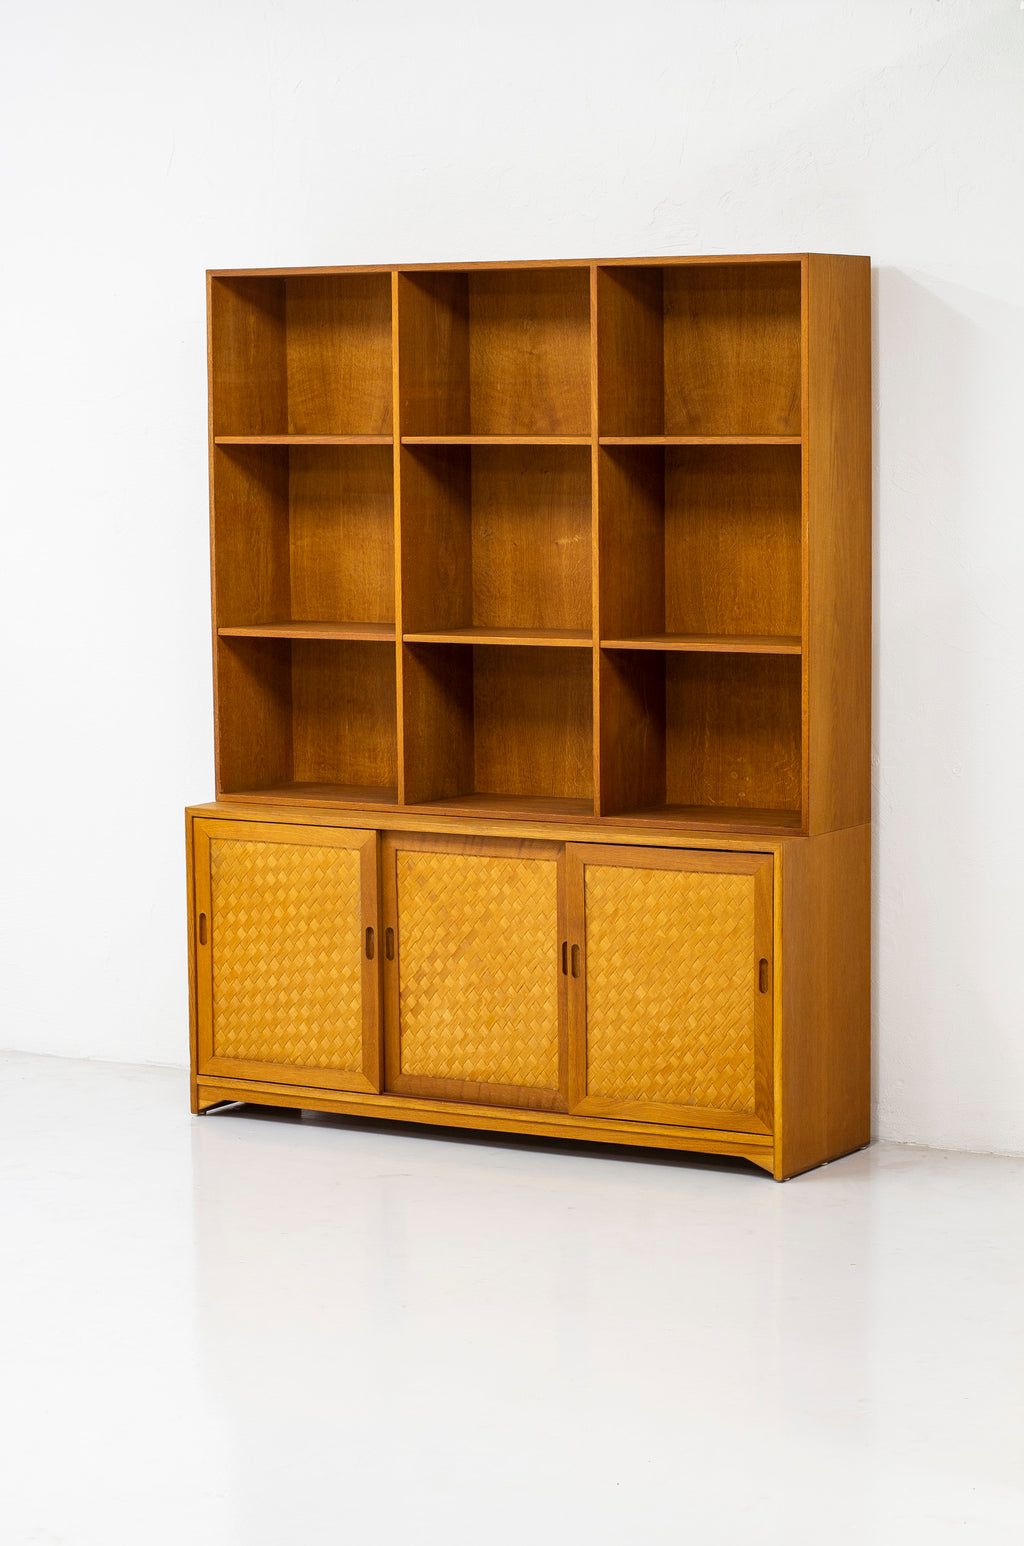 Rare bookcase by Alf Svensson